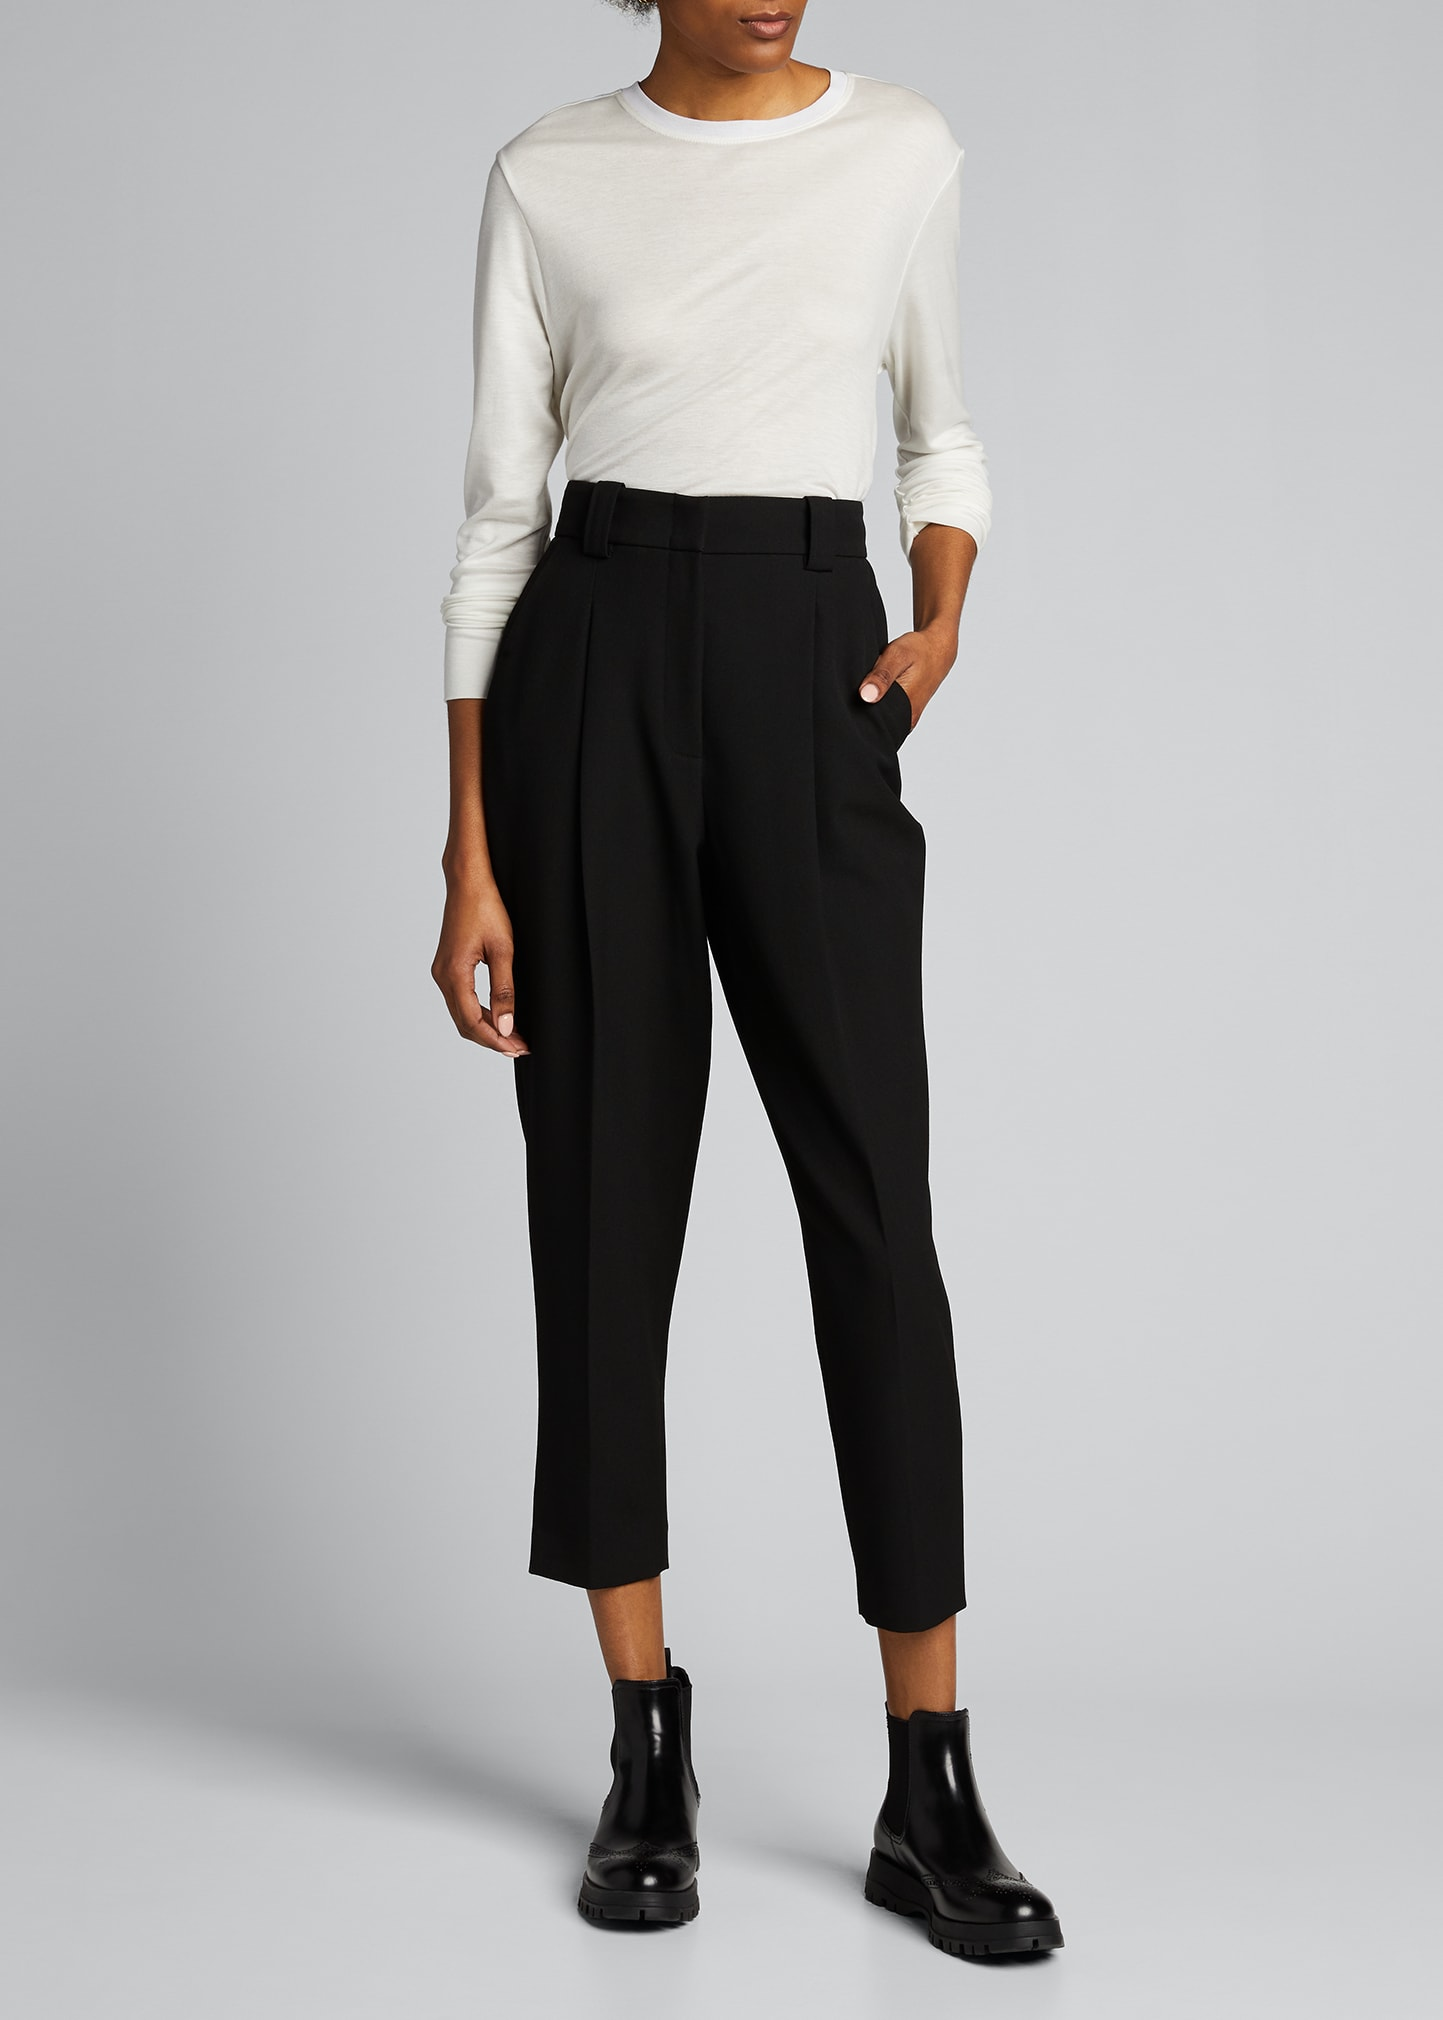 Helmut Lang Tops SYNC JERSEY LONG-SLEEVE TOP